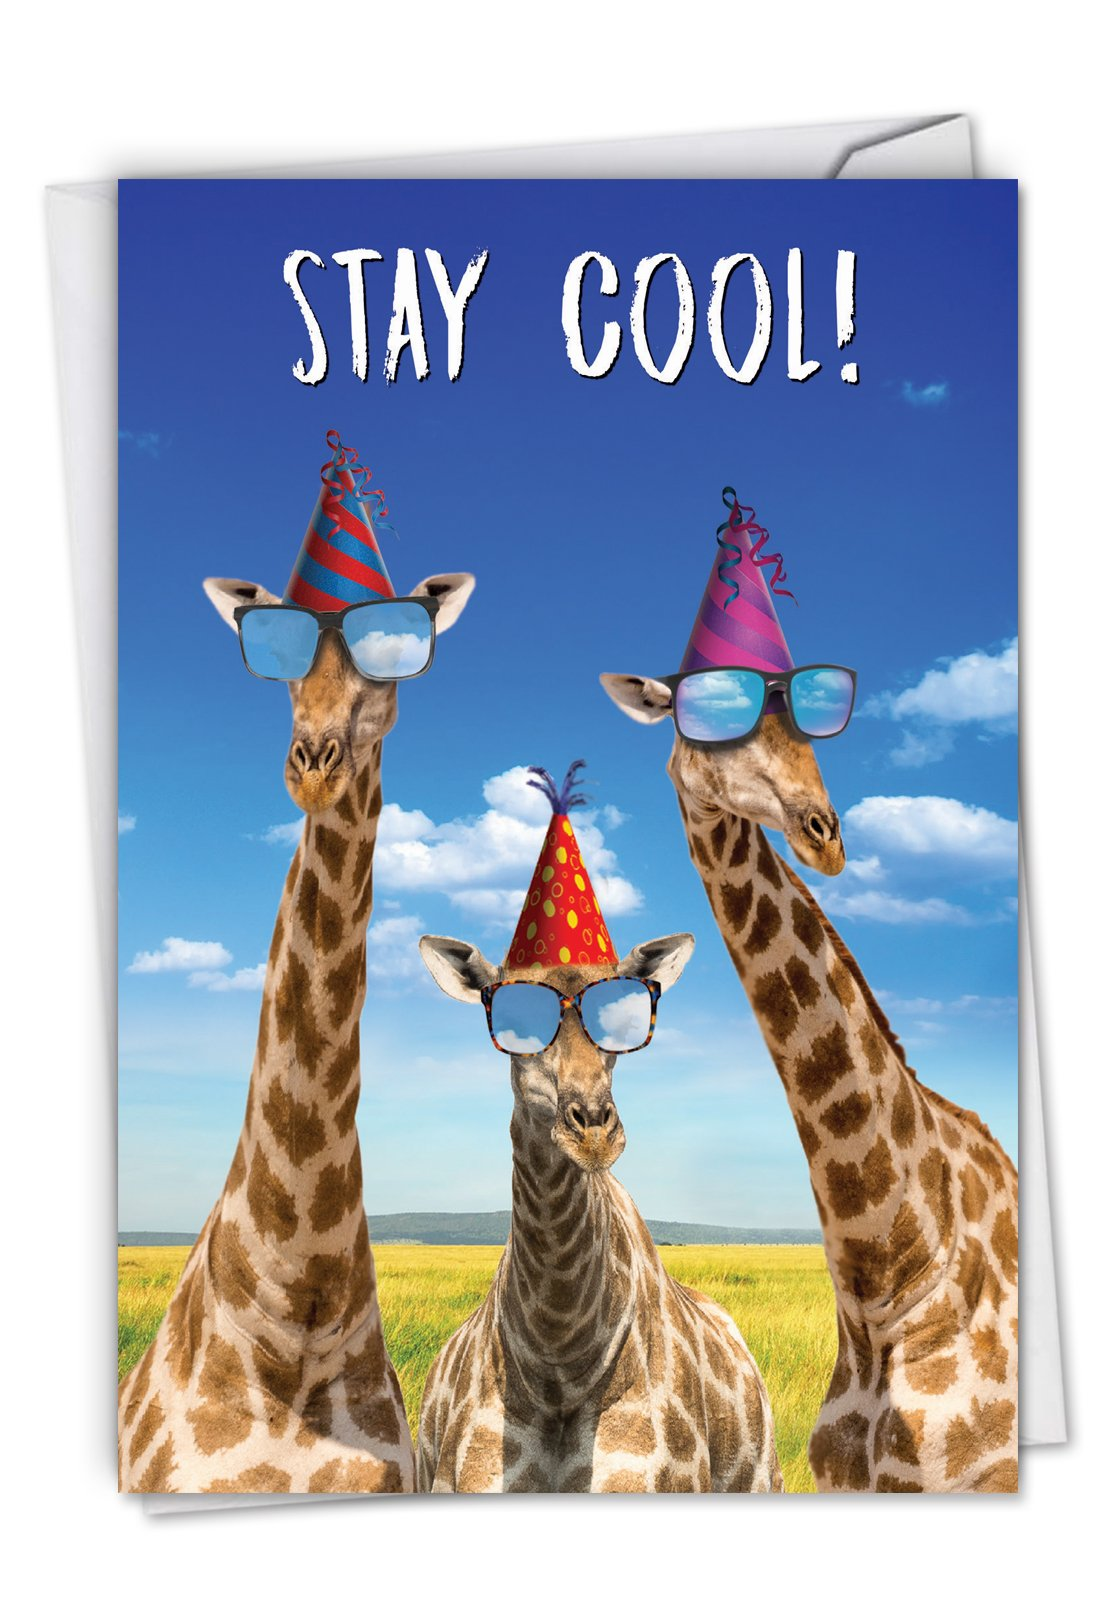 Cool Giraffes Funny Birthday Card with Envelope 4.63 x 6.75 inch - Happy Birthday Greeting Card for Kids, Boy, Girl - Colorful Zoo Animal Congratulations and Bday Note Card - Notecard Gift C6335BDG